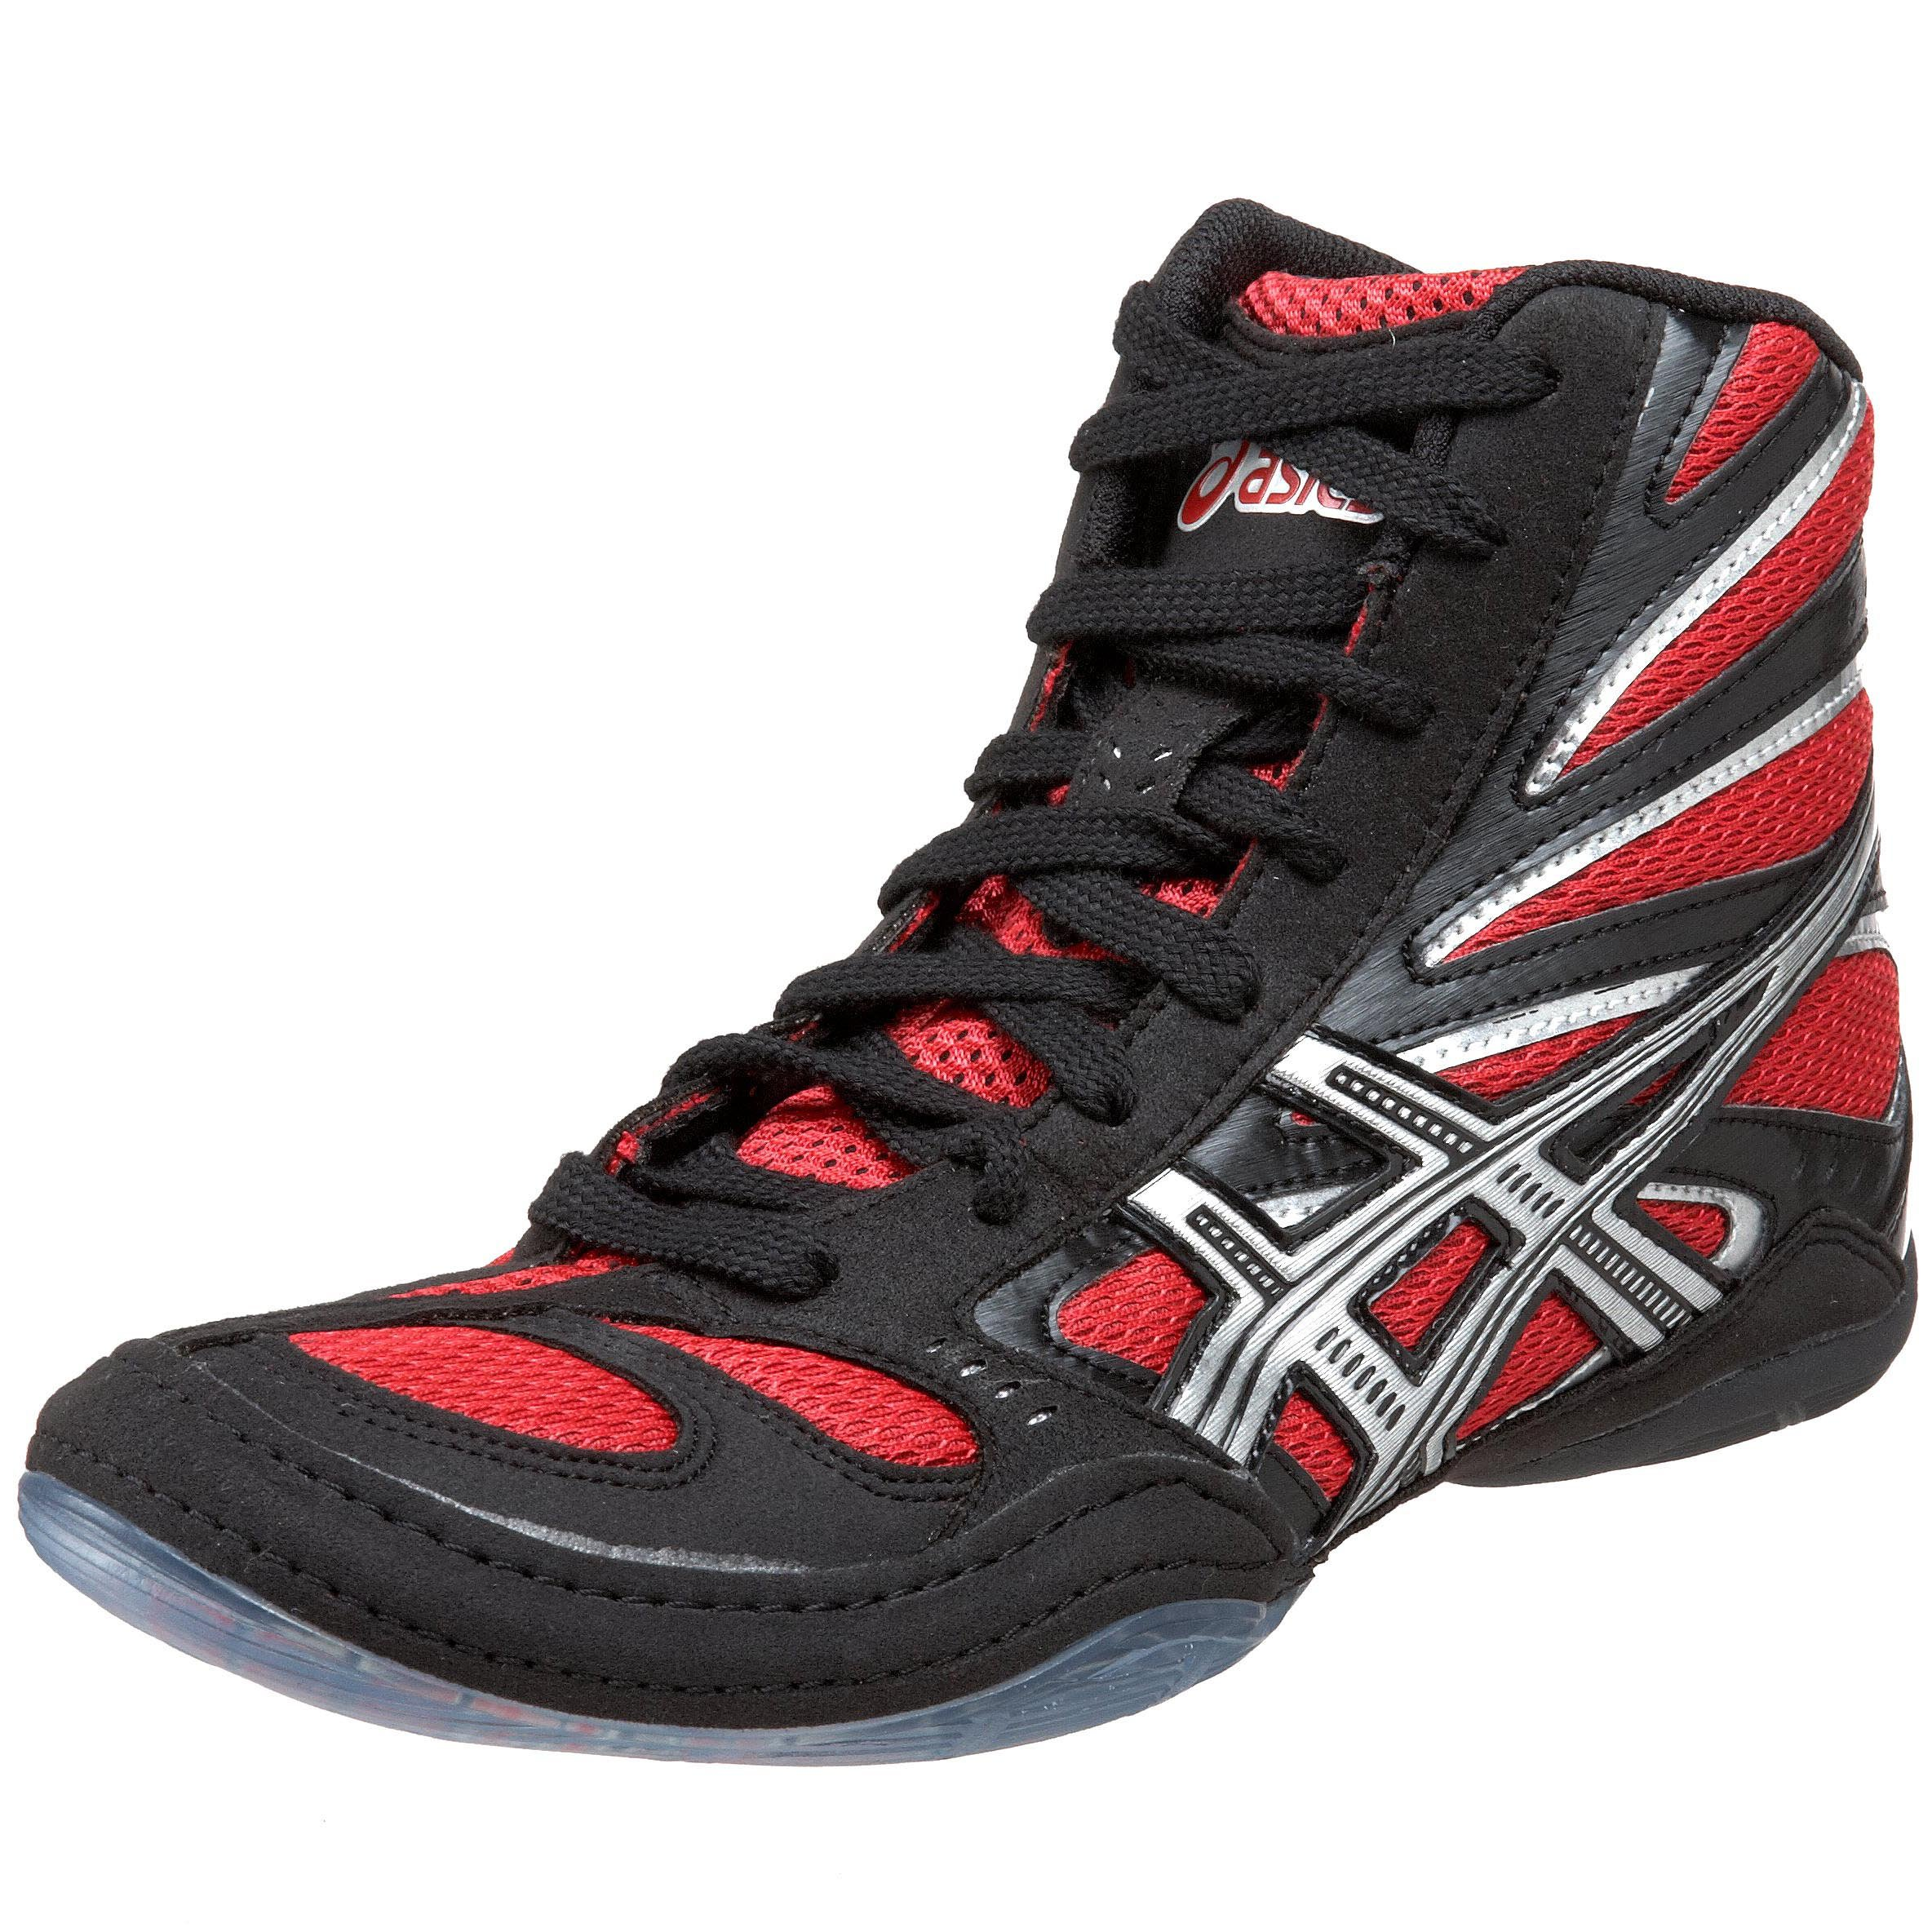 ASICS Men's Split Second 8 Wrestling Shoe,Black/Red/Silver,11 M US by ASICS